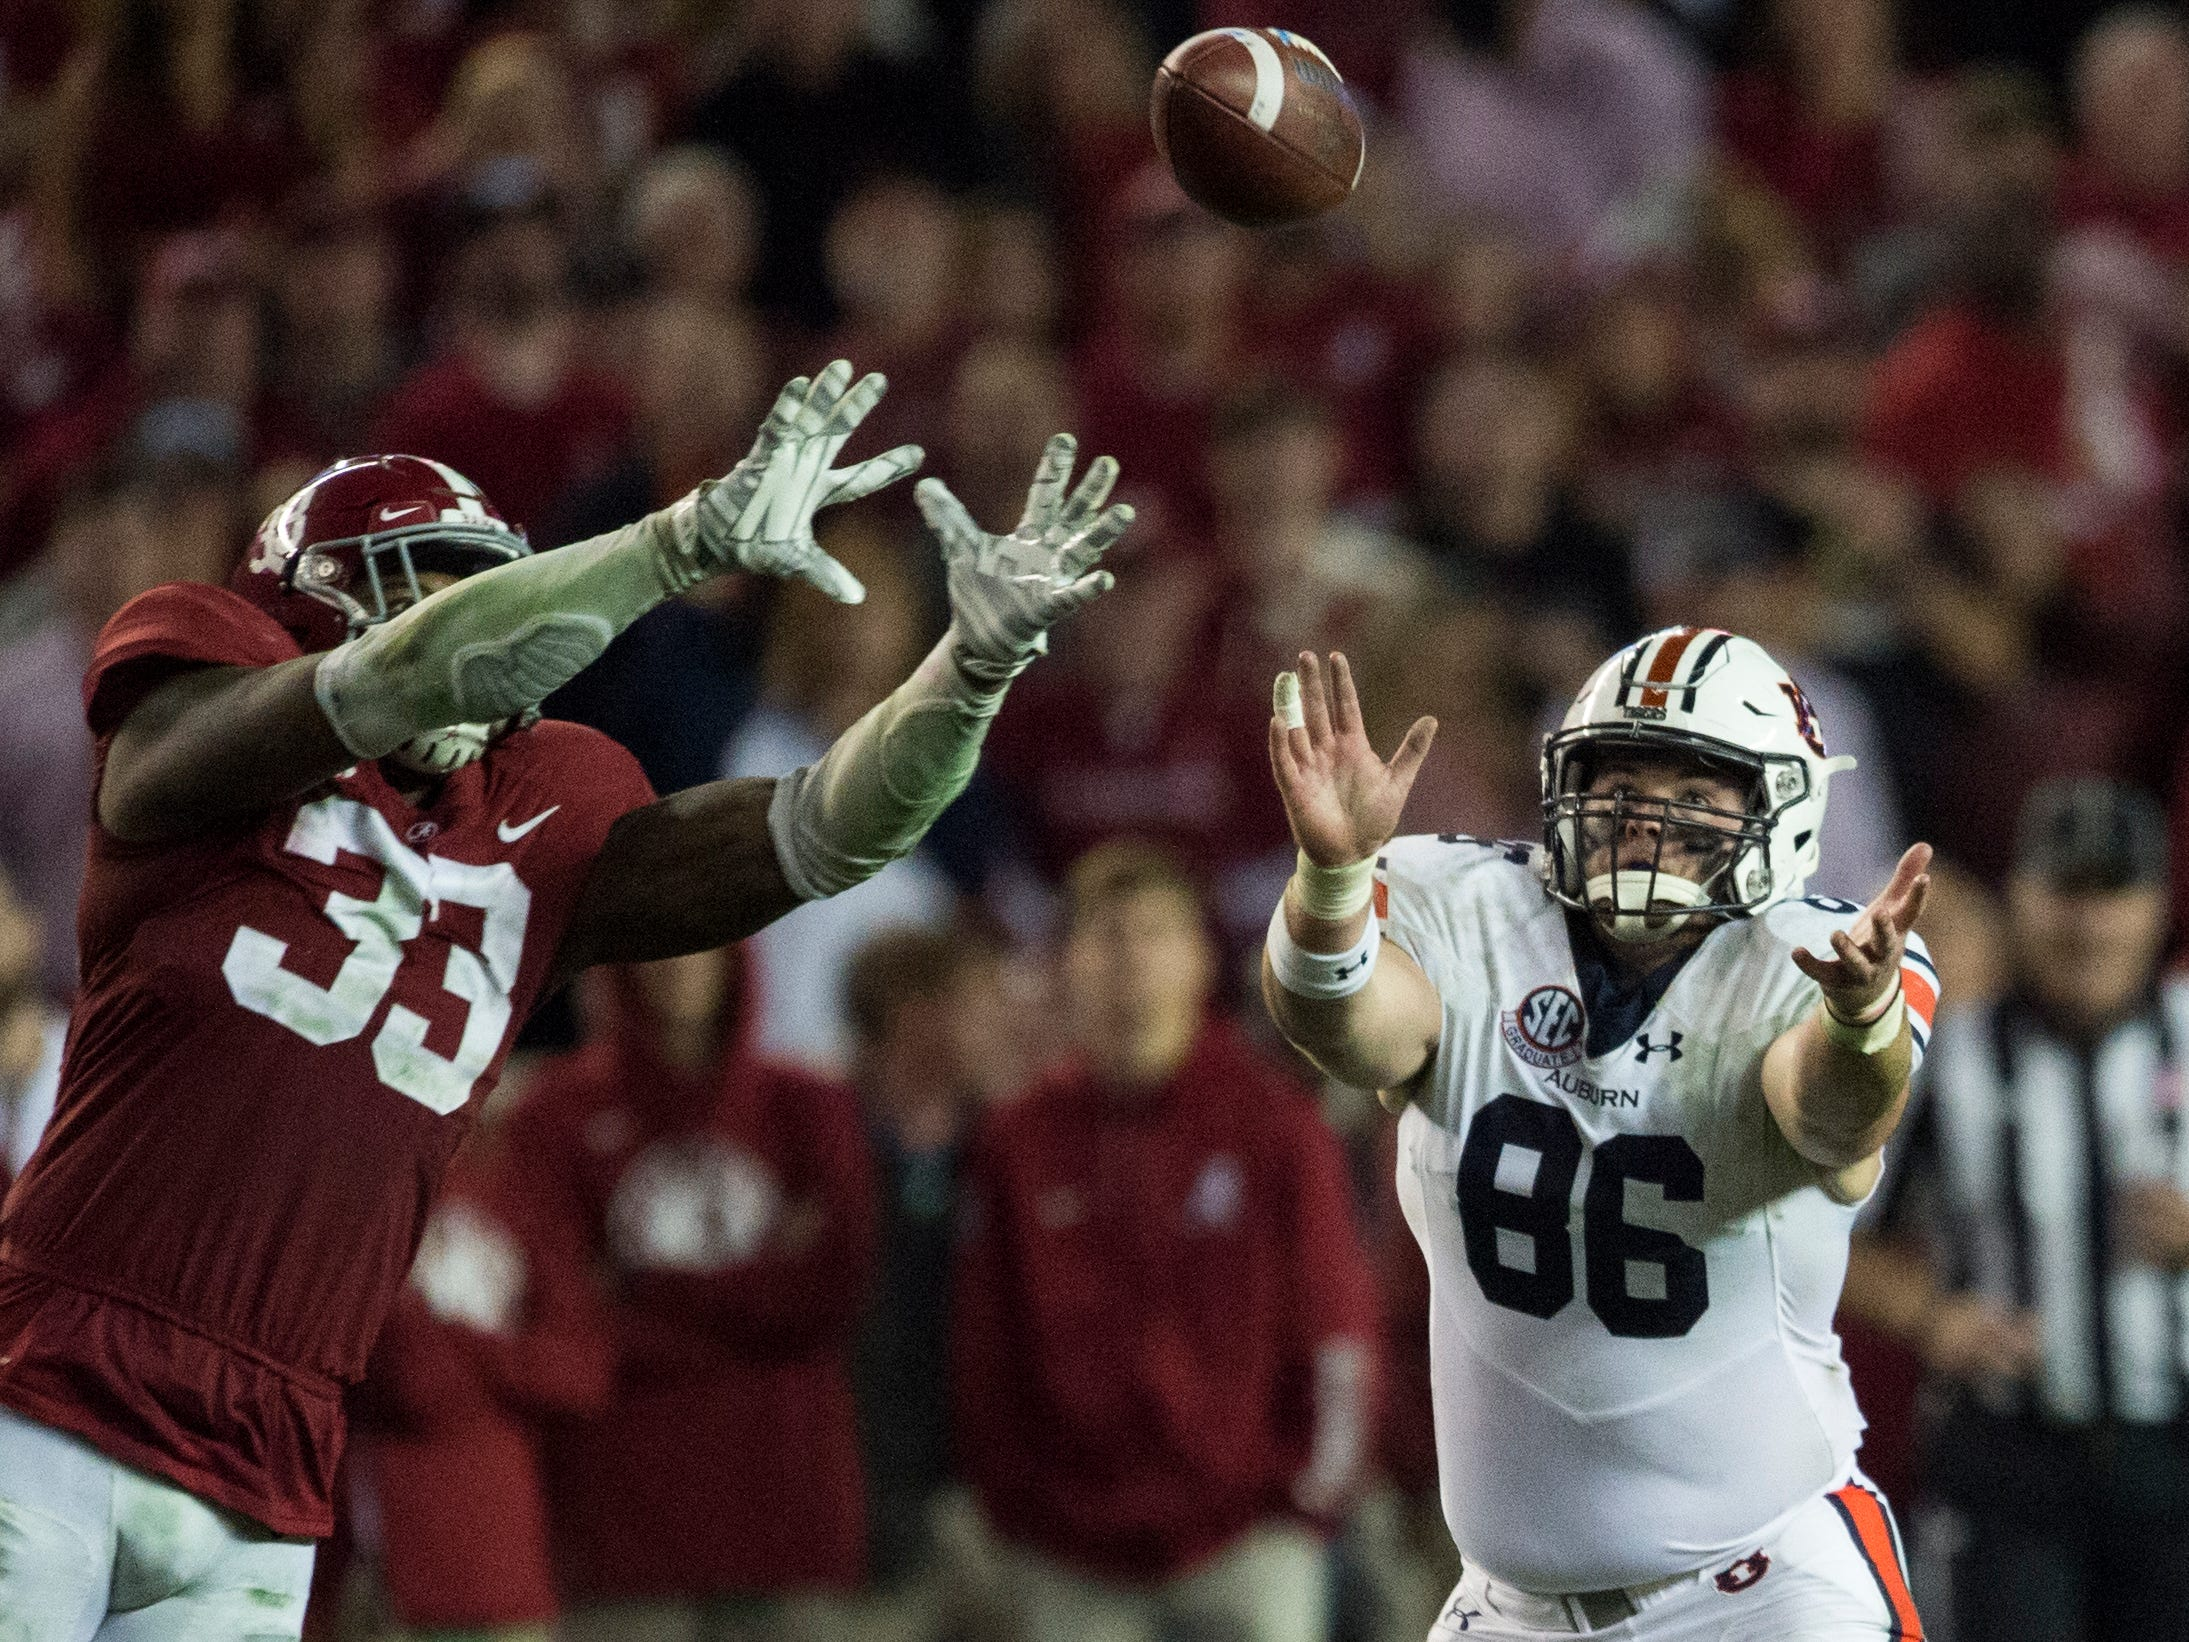 Alabama linebacker Anfernee Jennings (33) intercepts a pass intended for Auburn tight end Tucker Brown (86) during the Iron Bowl at Bryant-Denny Stadium in Tuscaloosa, Ala., on Saturday, Nov. 24, 2018. Alabama defeated Auburn 52-21.